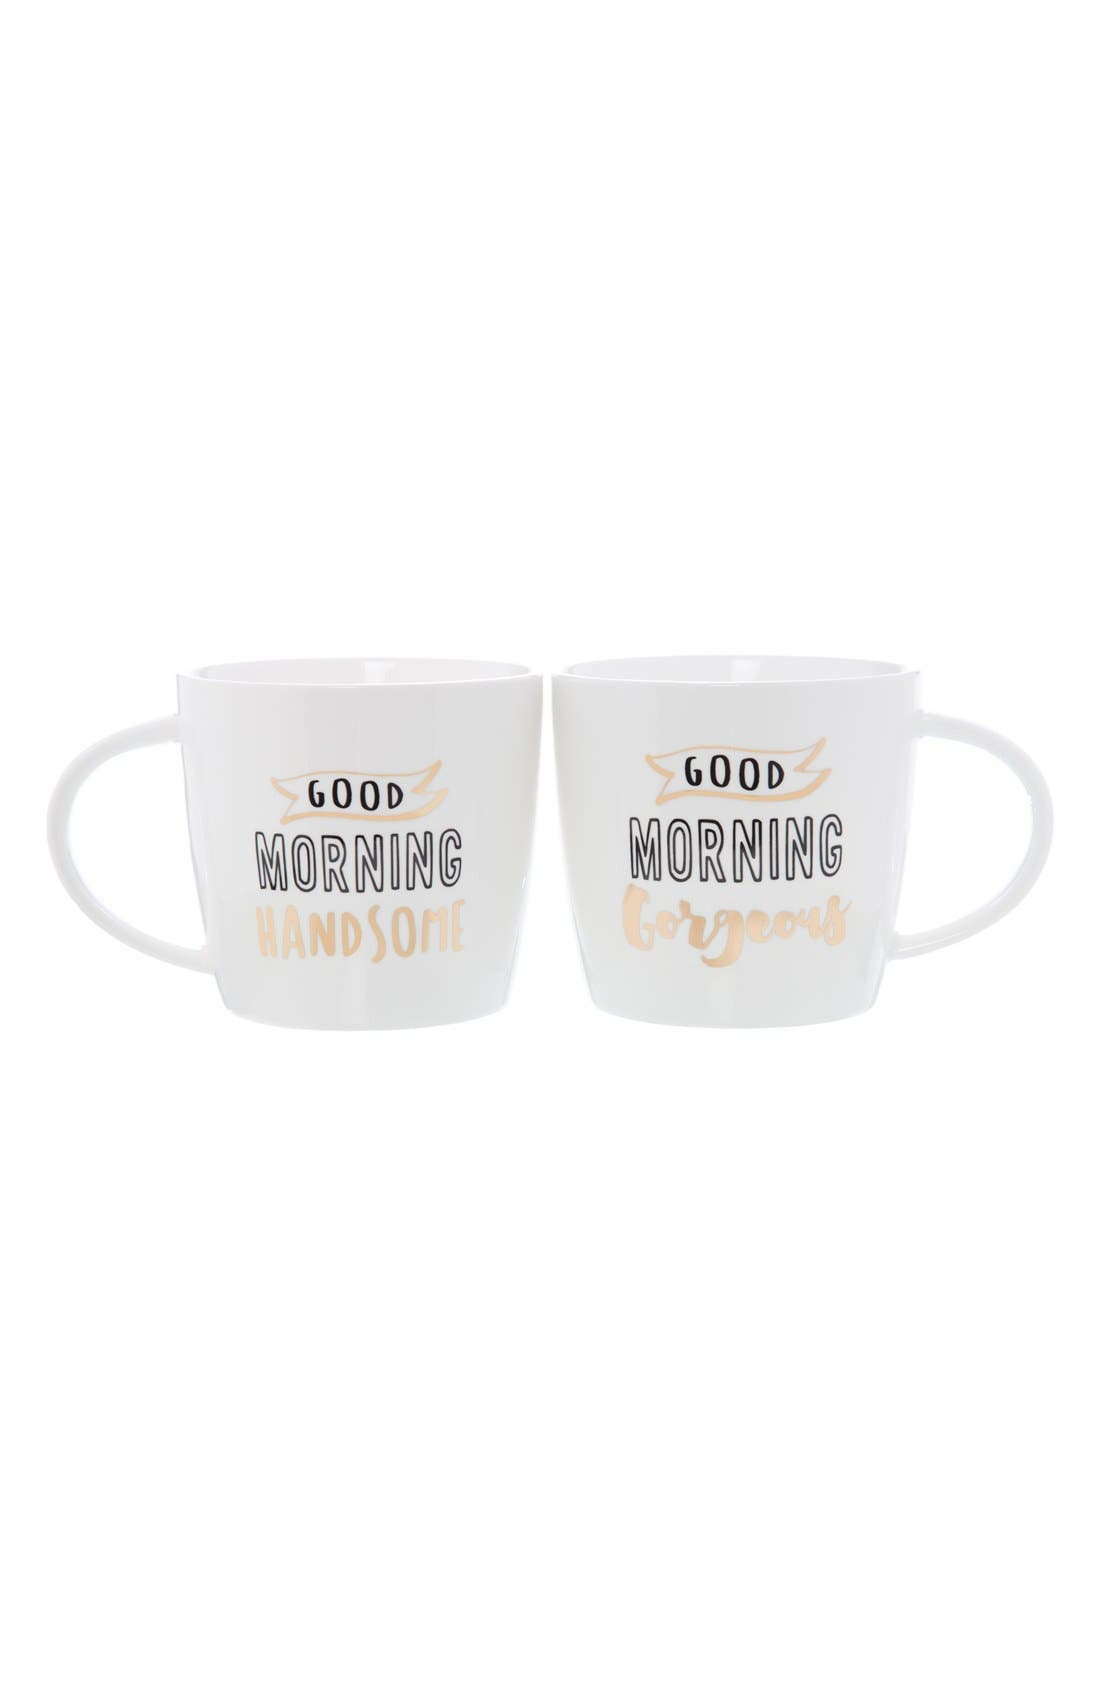 'Good Morning' Ceramic Coffee Mugs,                         Main,                         color, 100